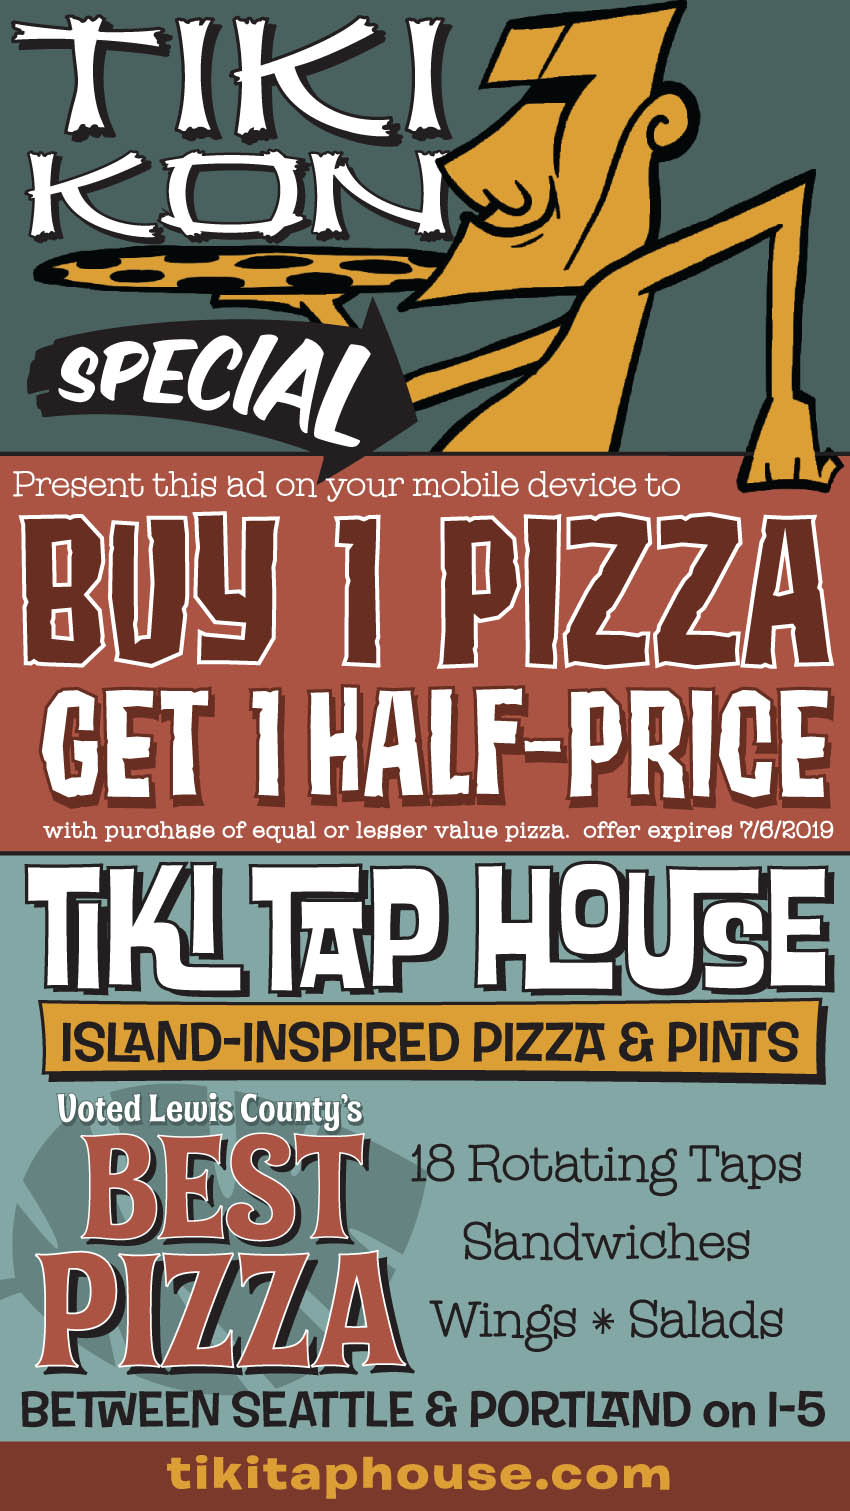 Tiki Tap House coupon: buy 1 pizza and get a 2nd one for half price. Expires 7/6/2019.